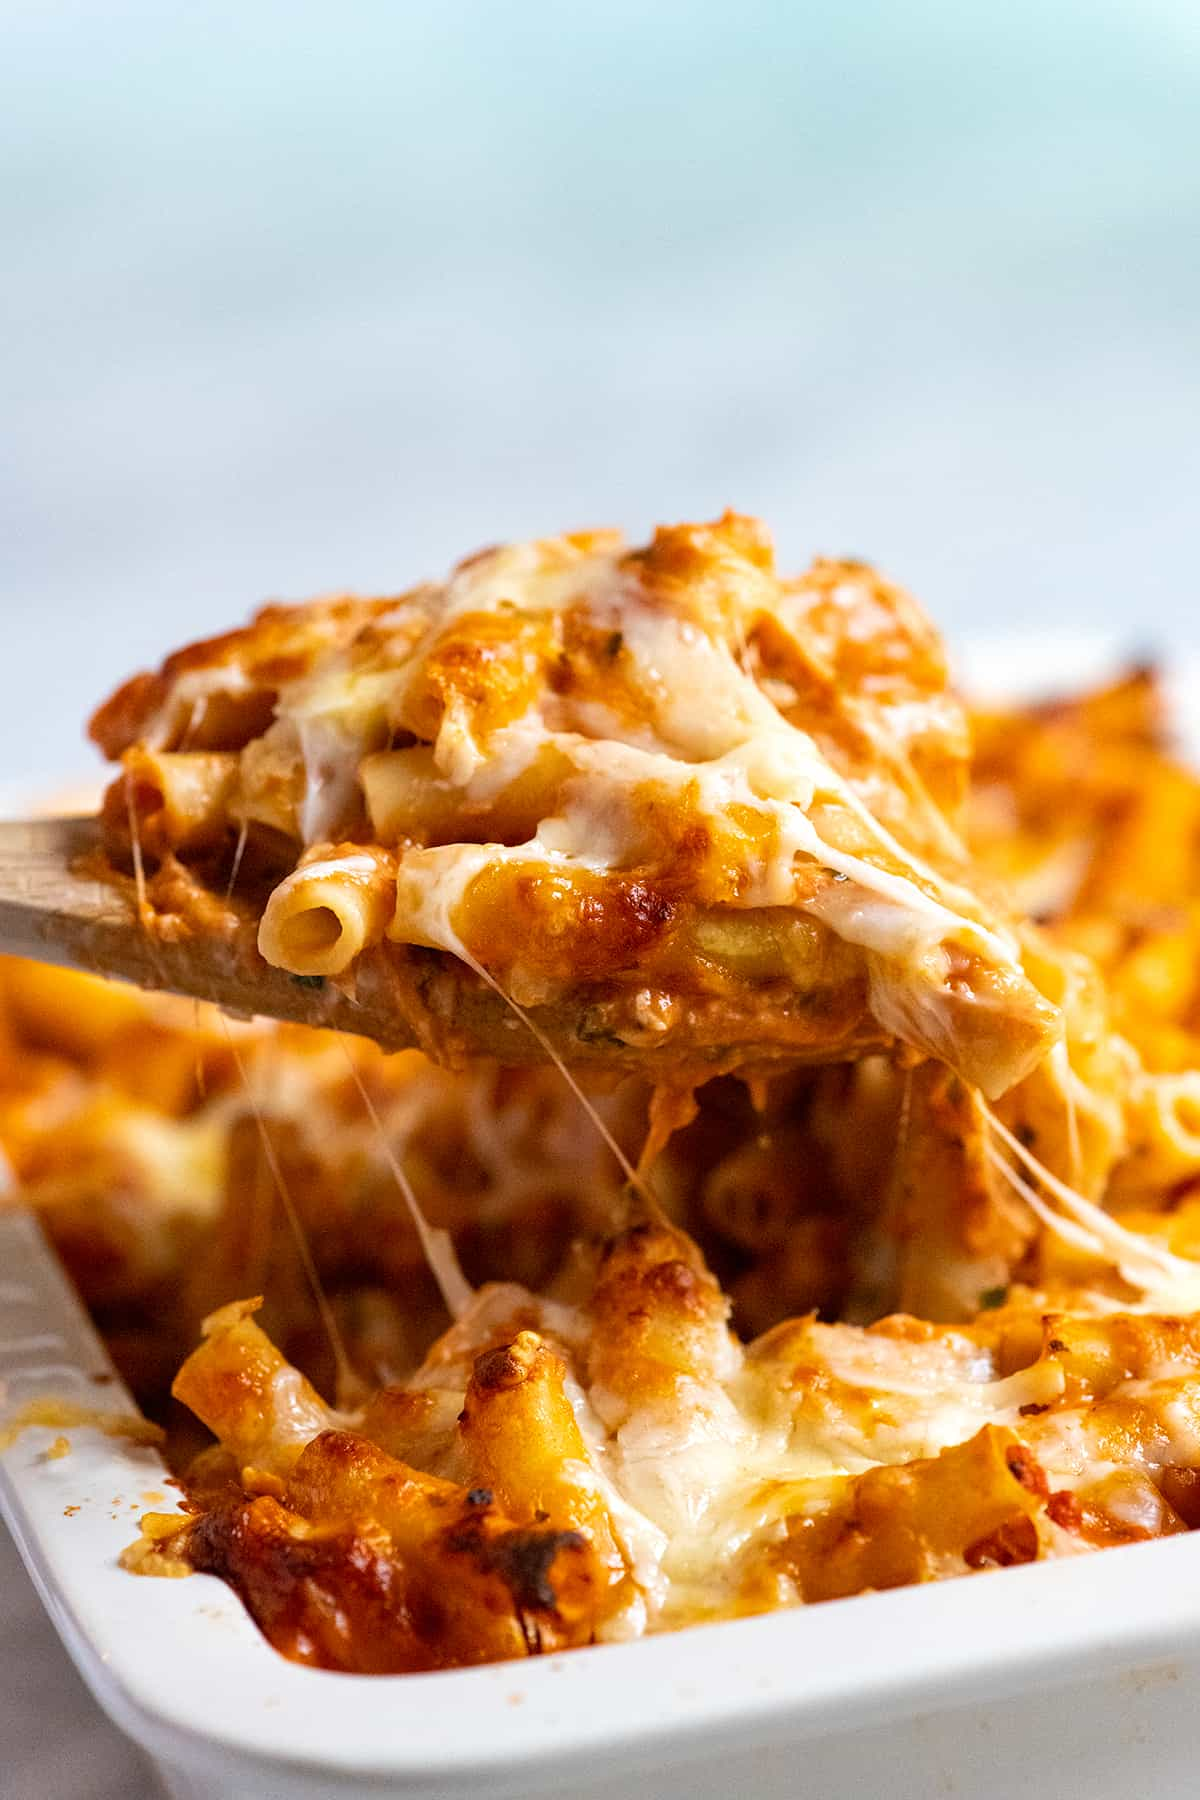 Serving baked ziti